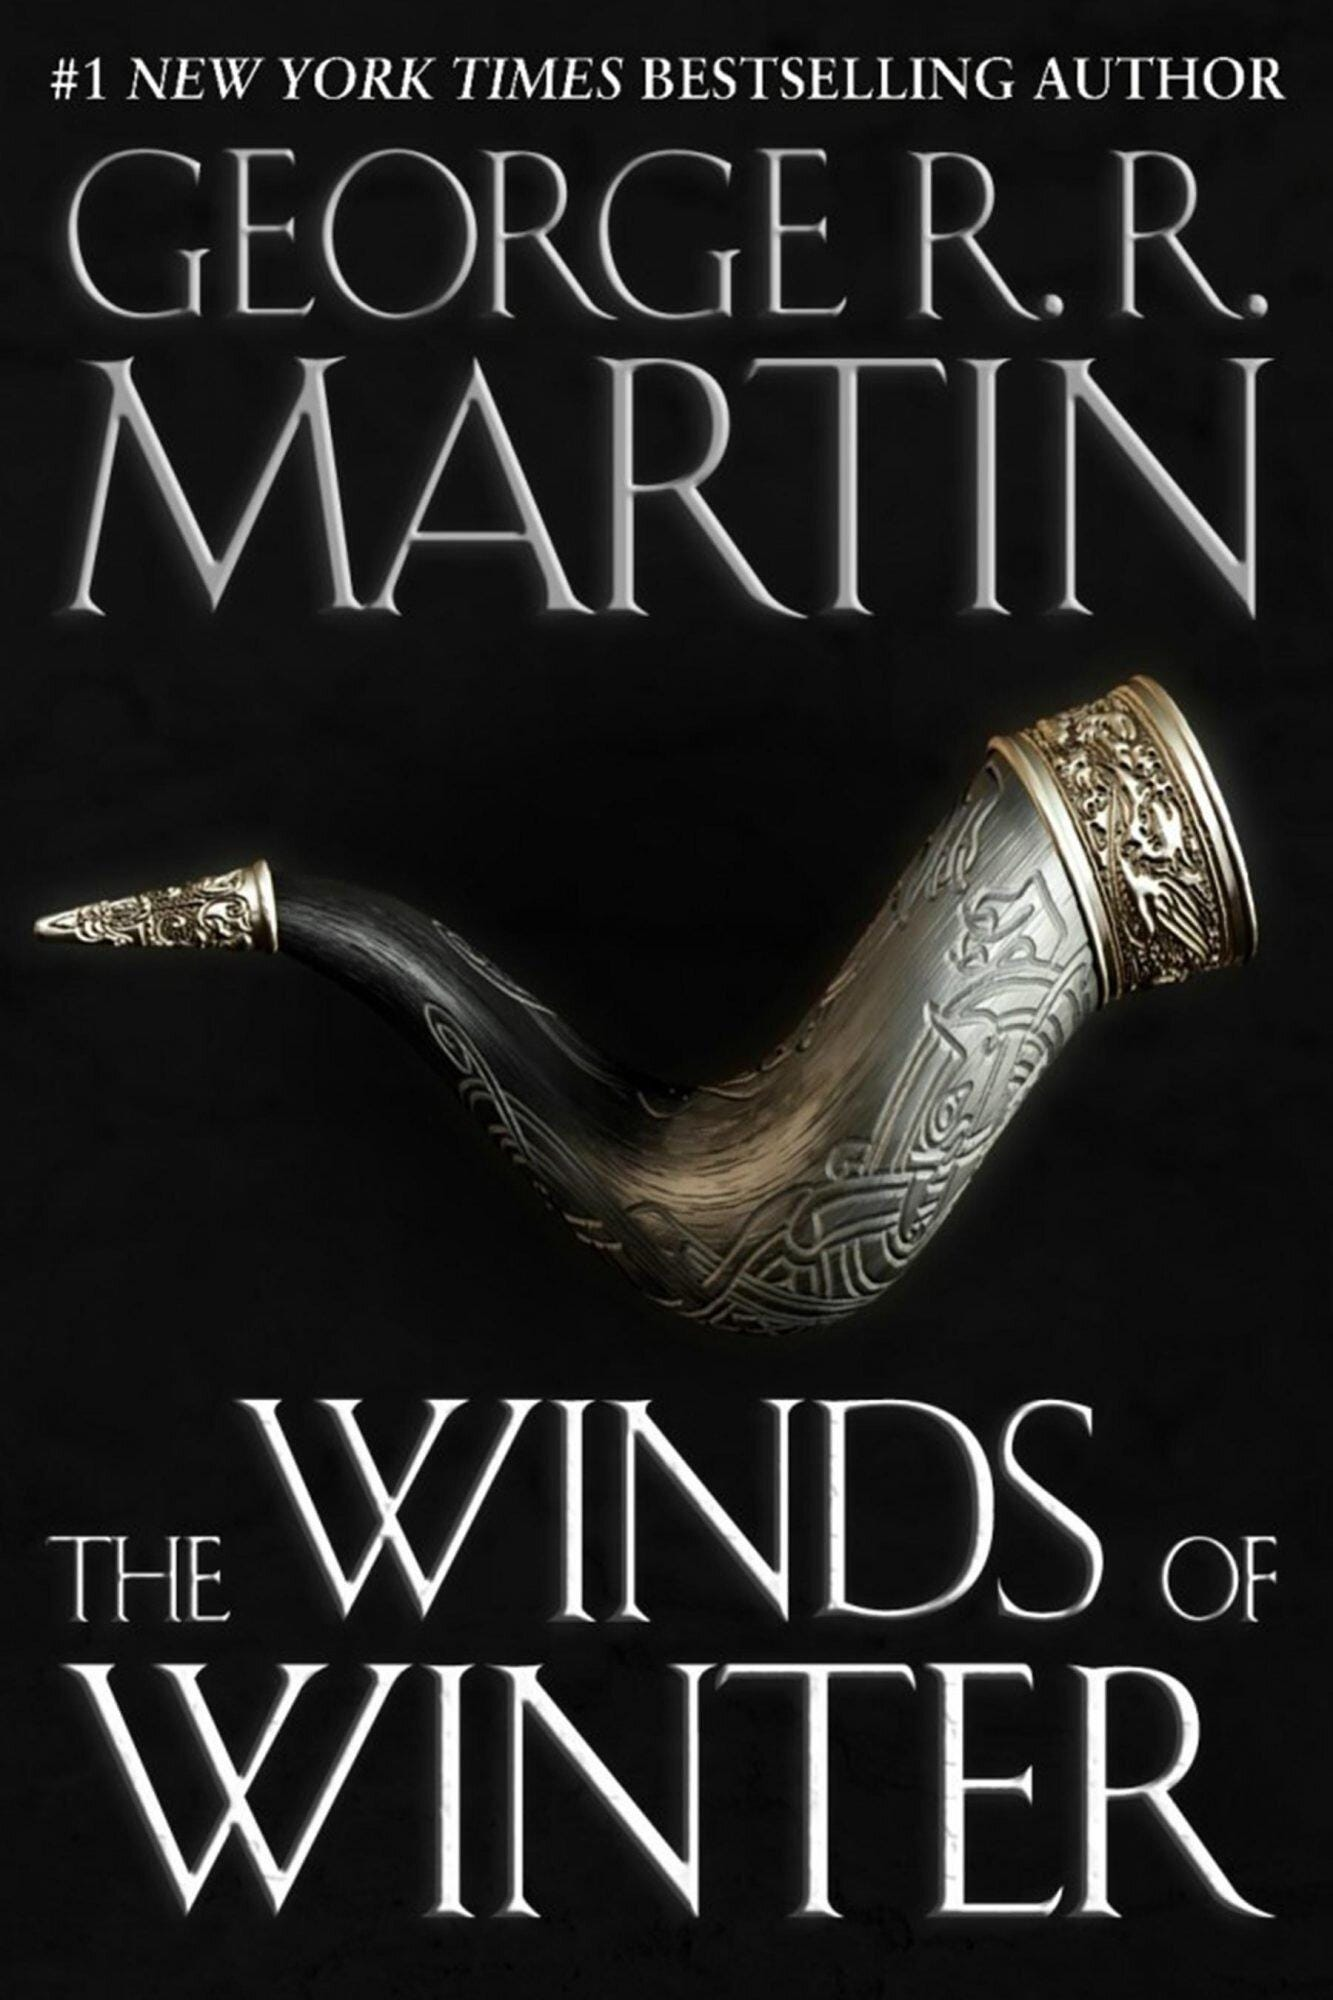 George R.R. Martin just offered a cryptic update on The Winds of Winter ...  or did he?